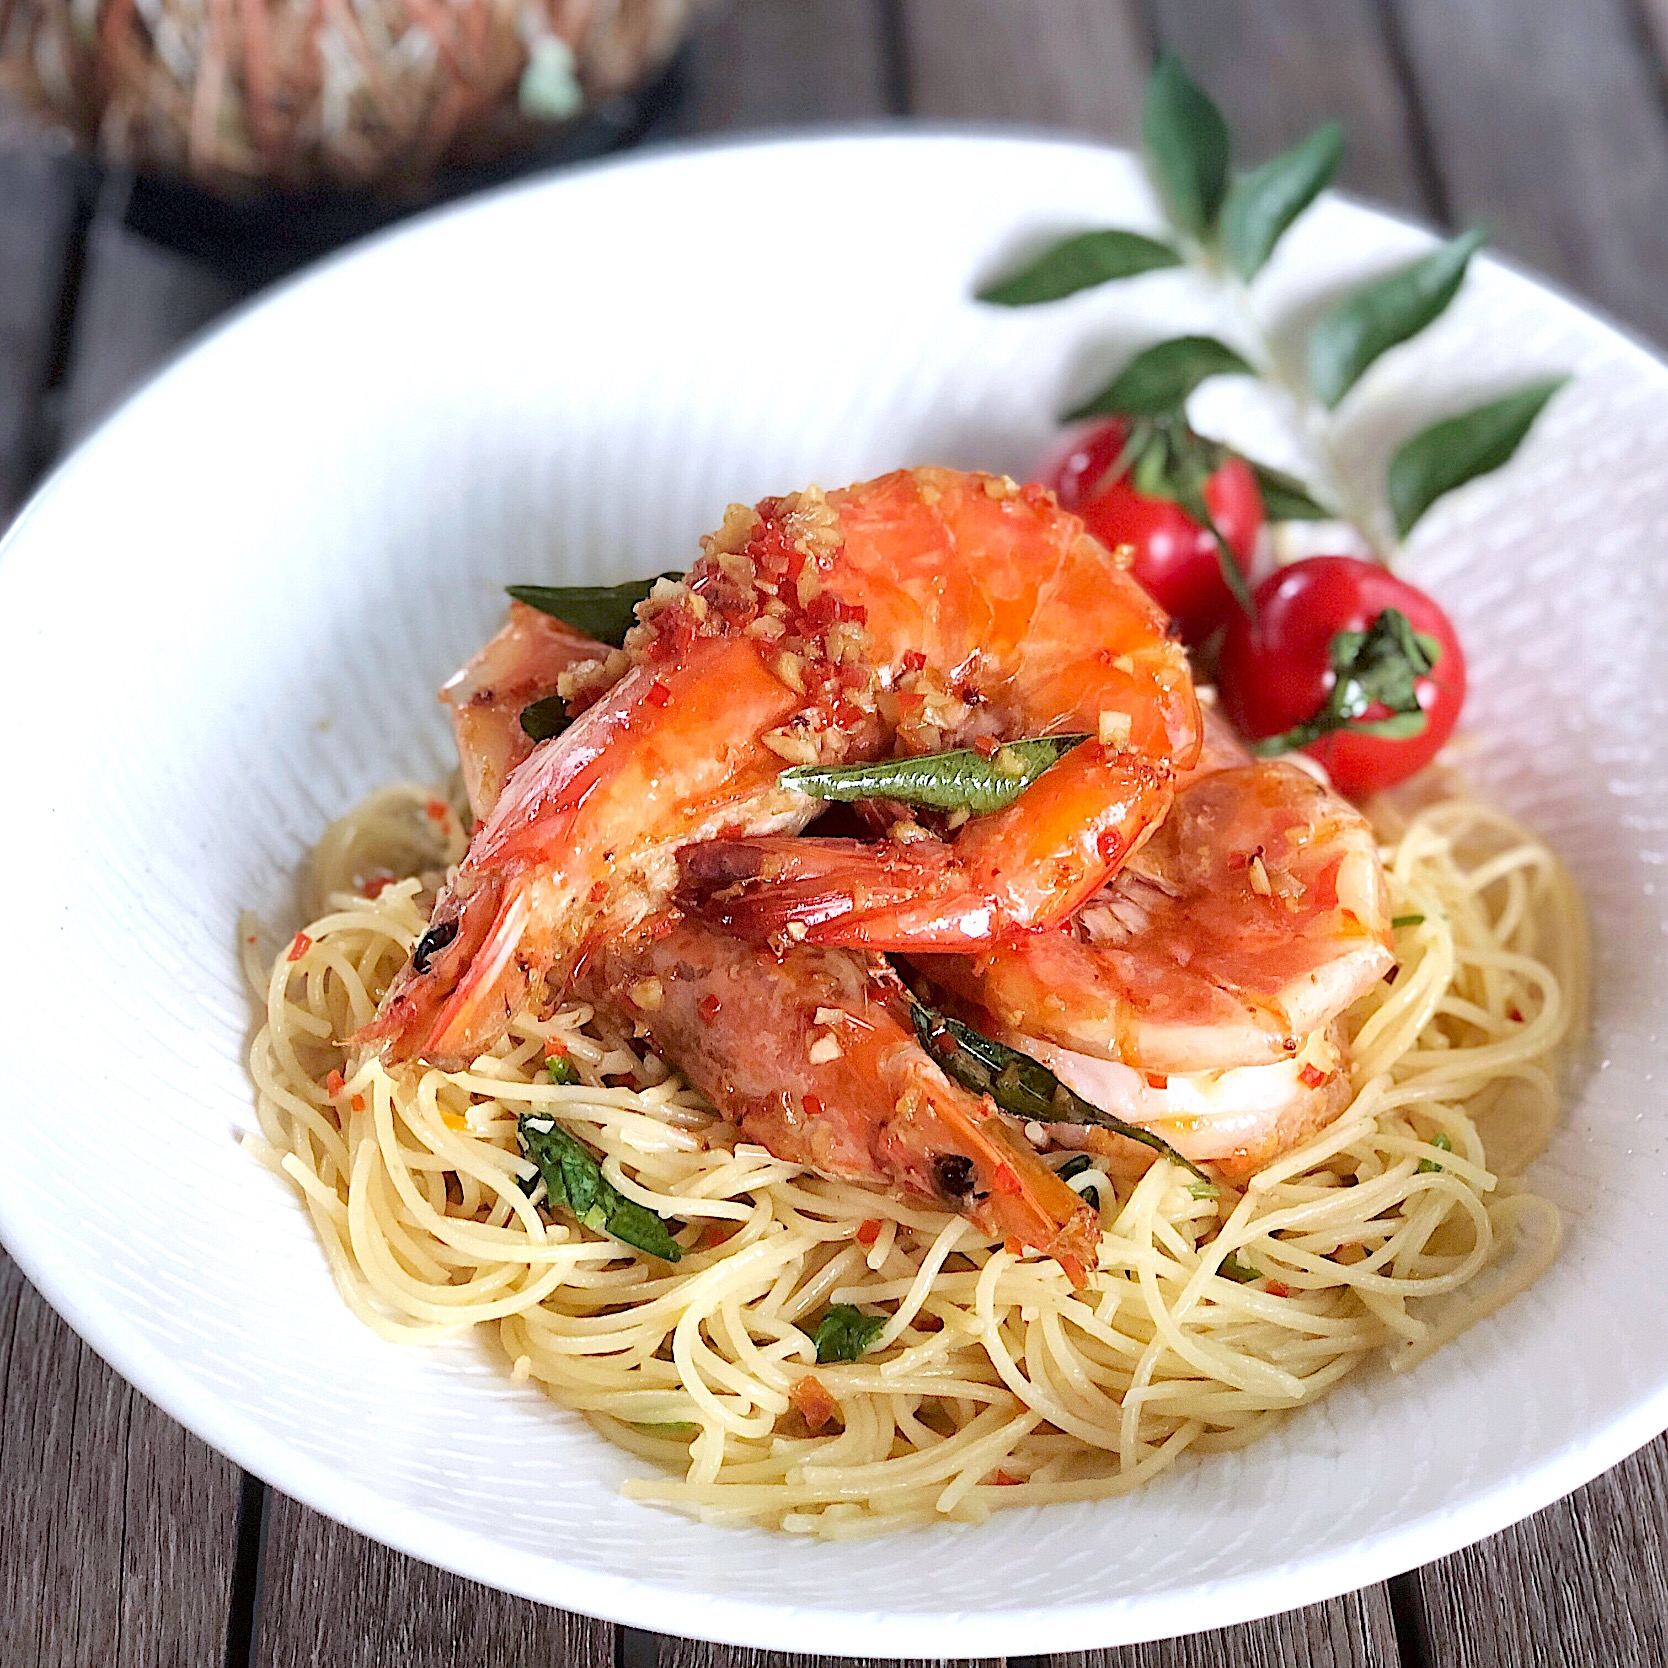 Spicy aglio olio with lemongrass prawns